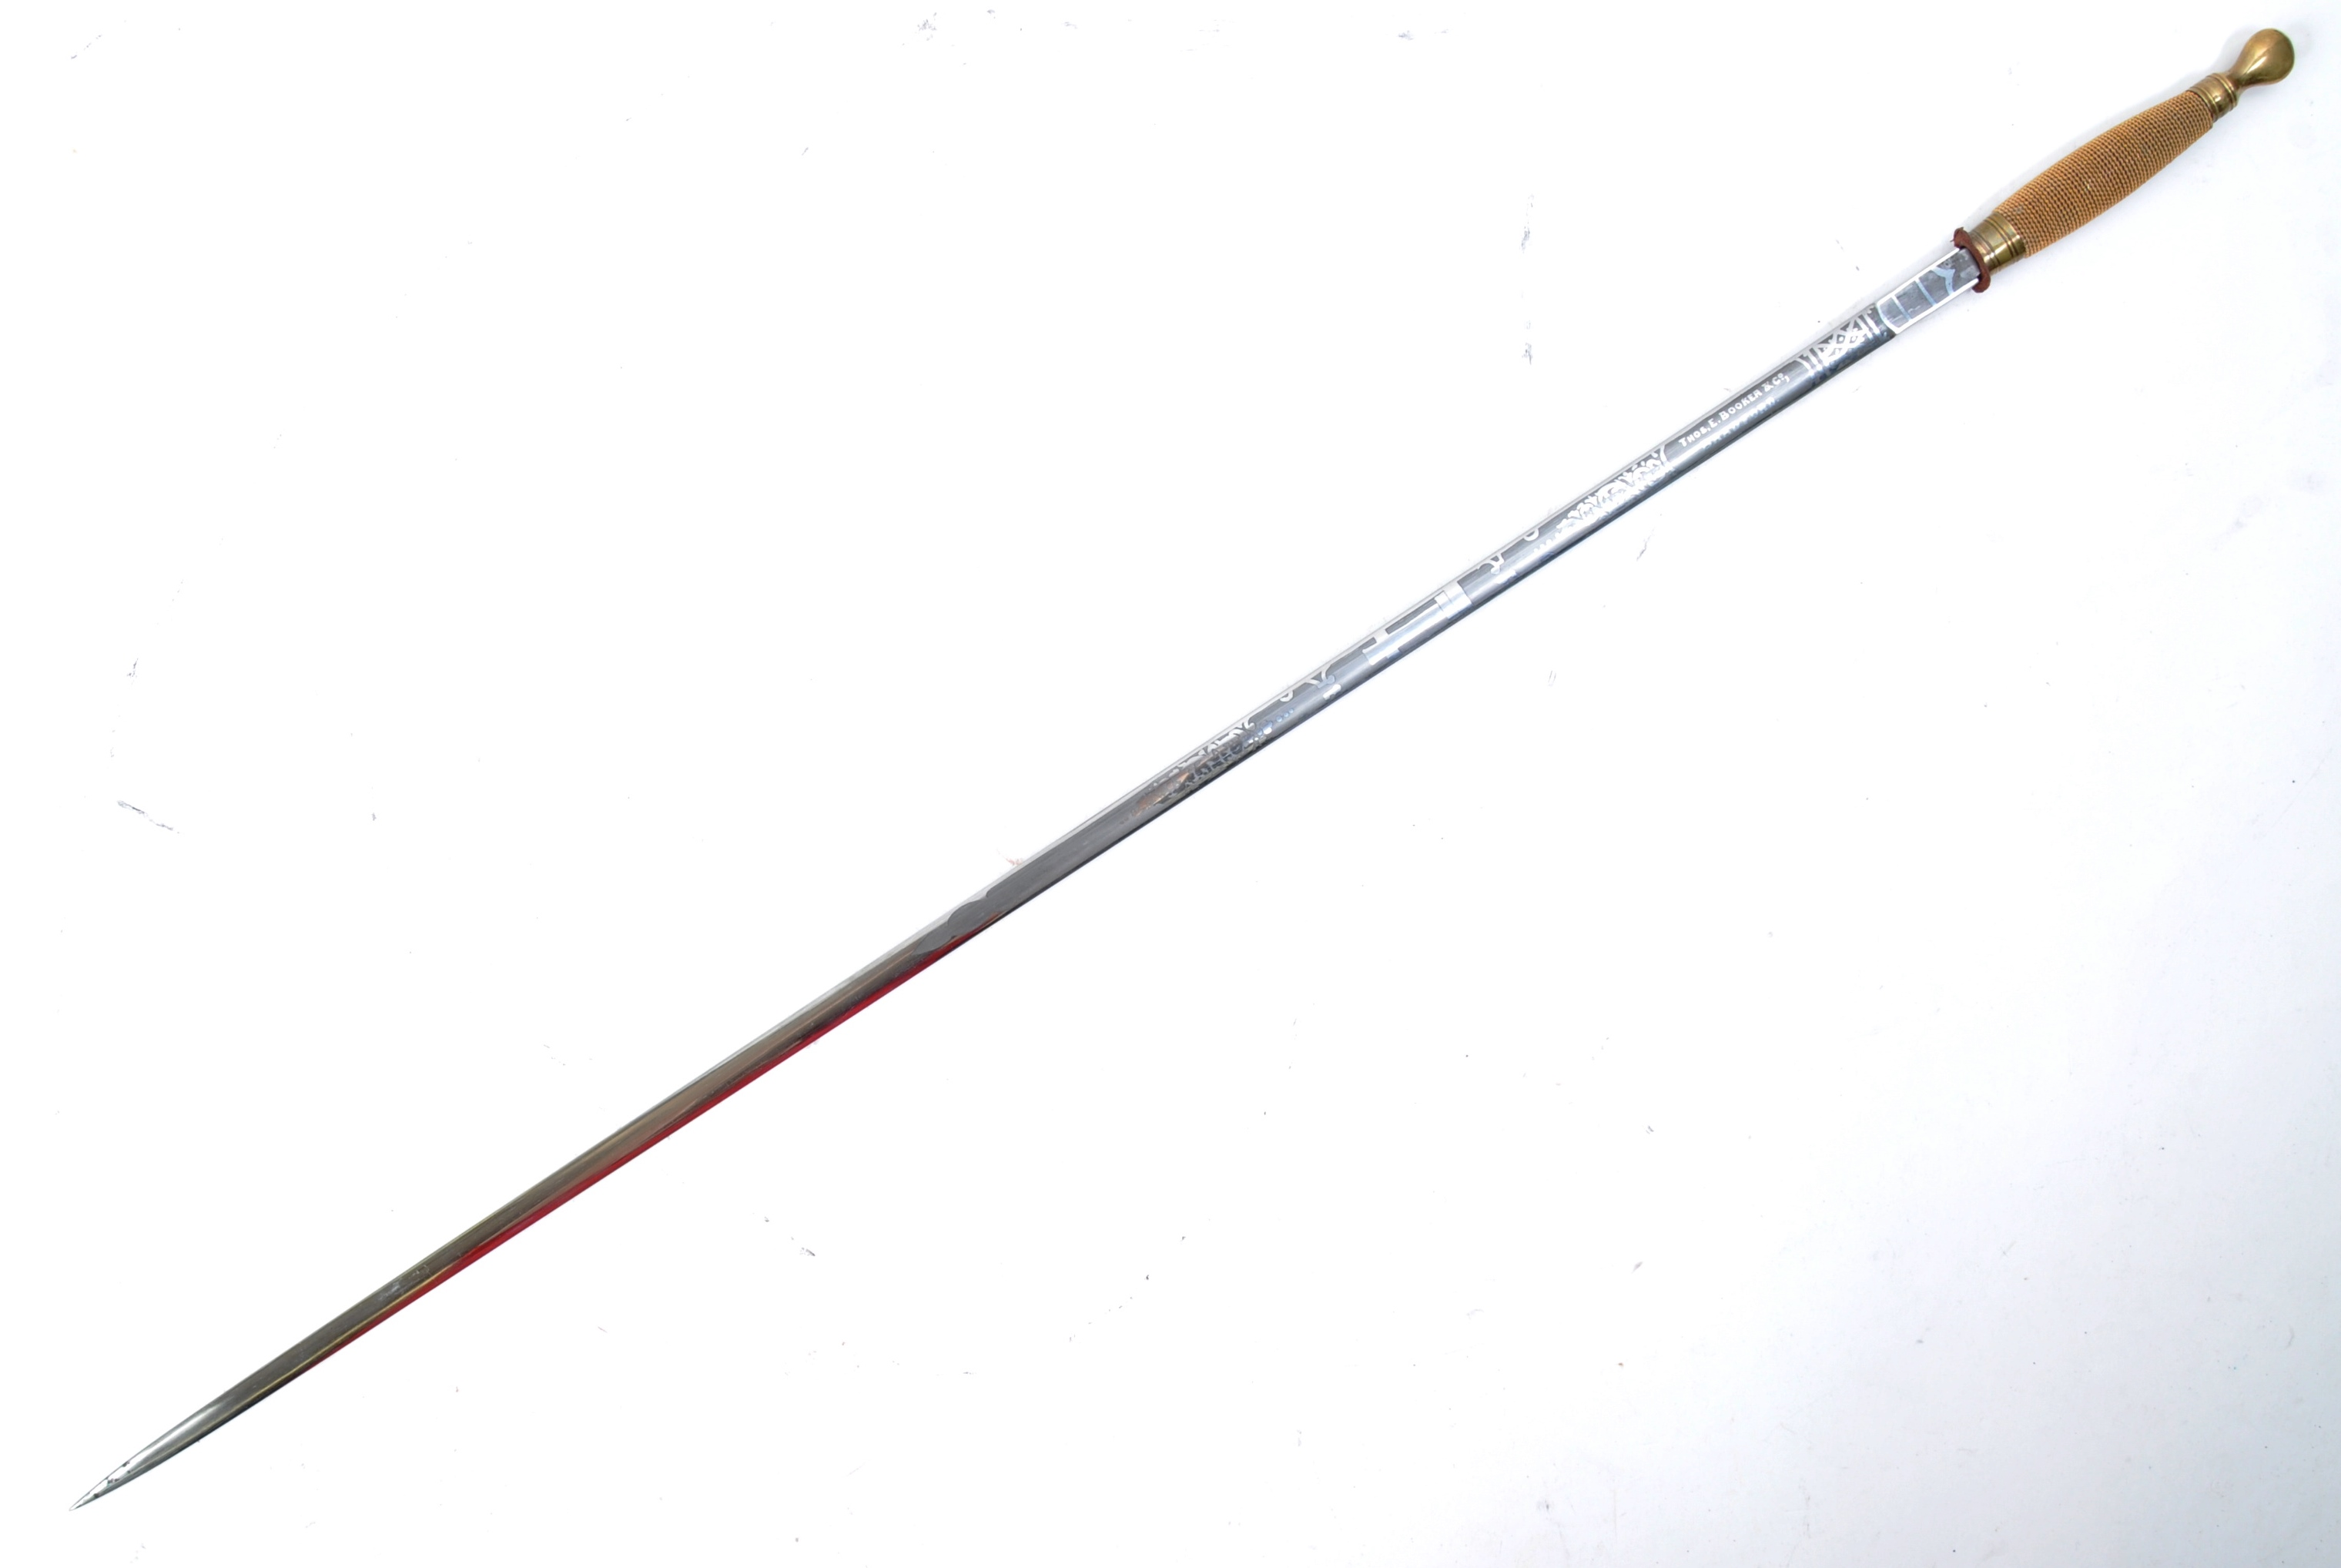 EARLY 20TH MASONIC WALKING CANE WITH CONCEALED SWORD - Image 2 of 11